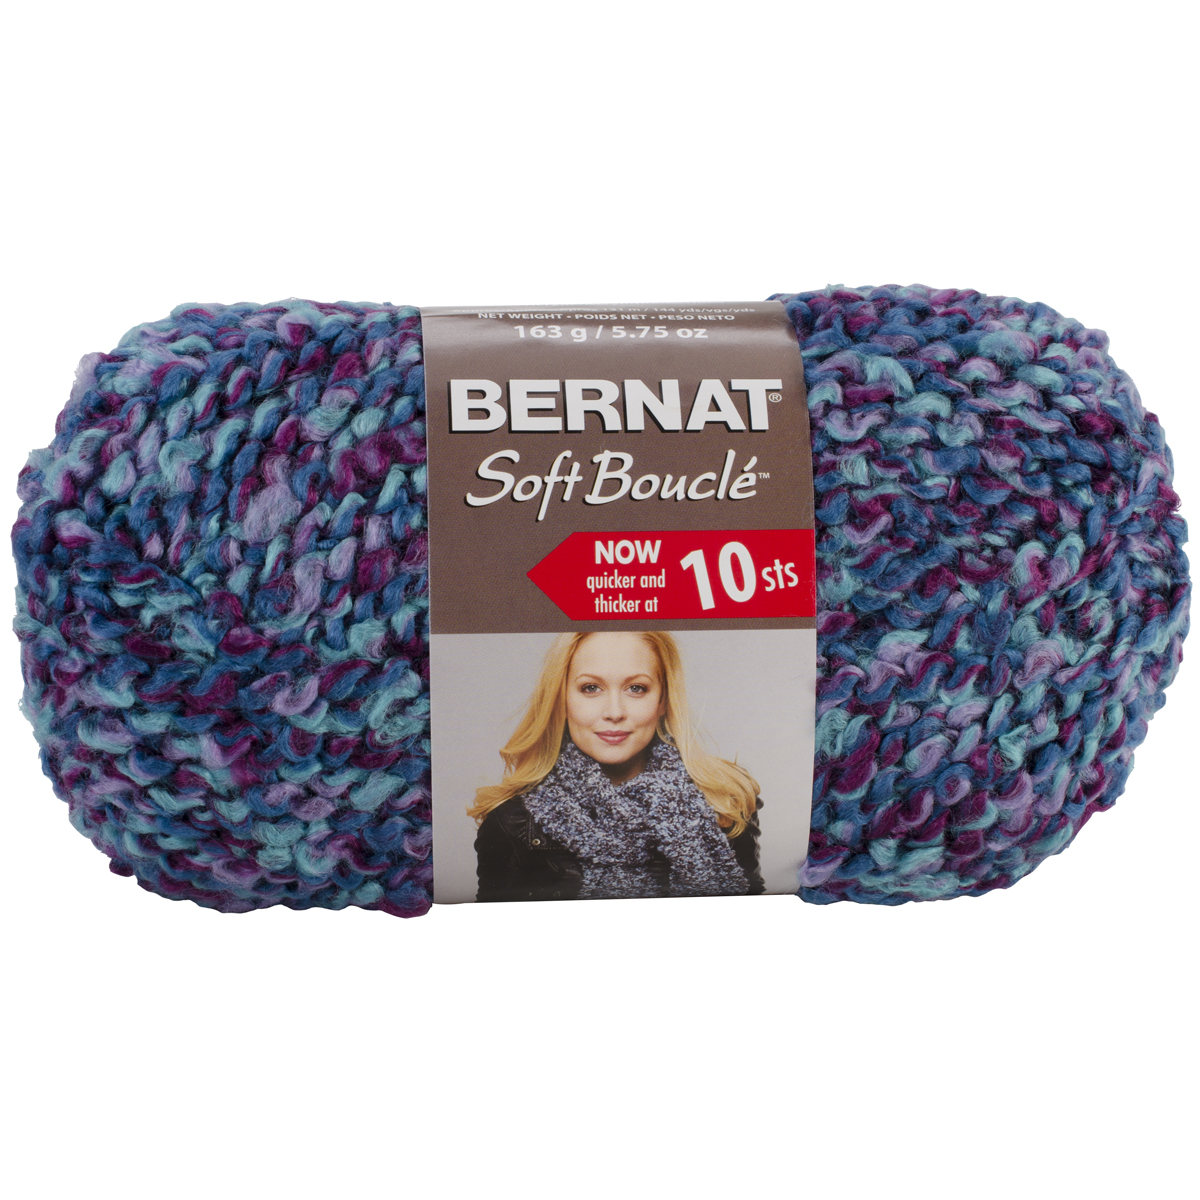 Boucle Yarn : ... Soft Boucle Yarn ? Bernat Soft Boucle Yarn Super Bulky Luxury Shades